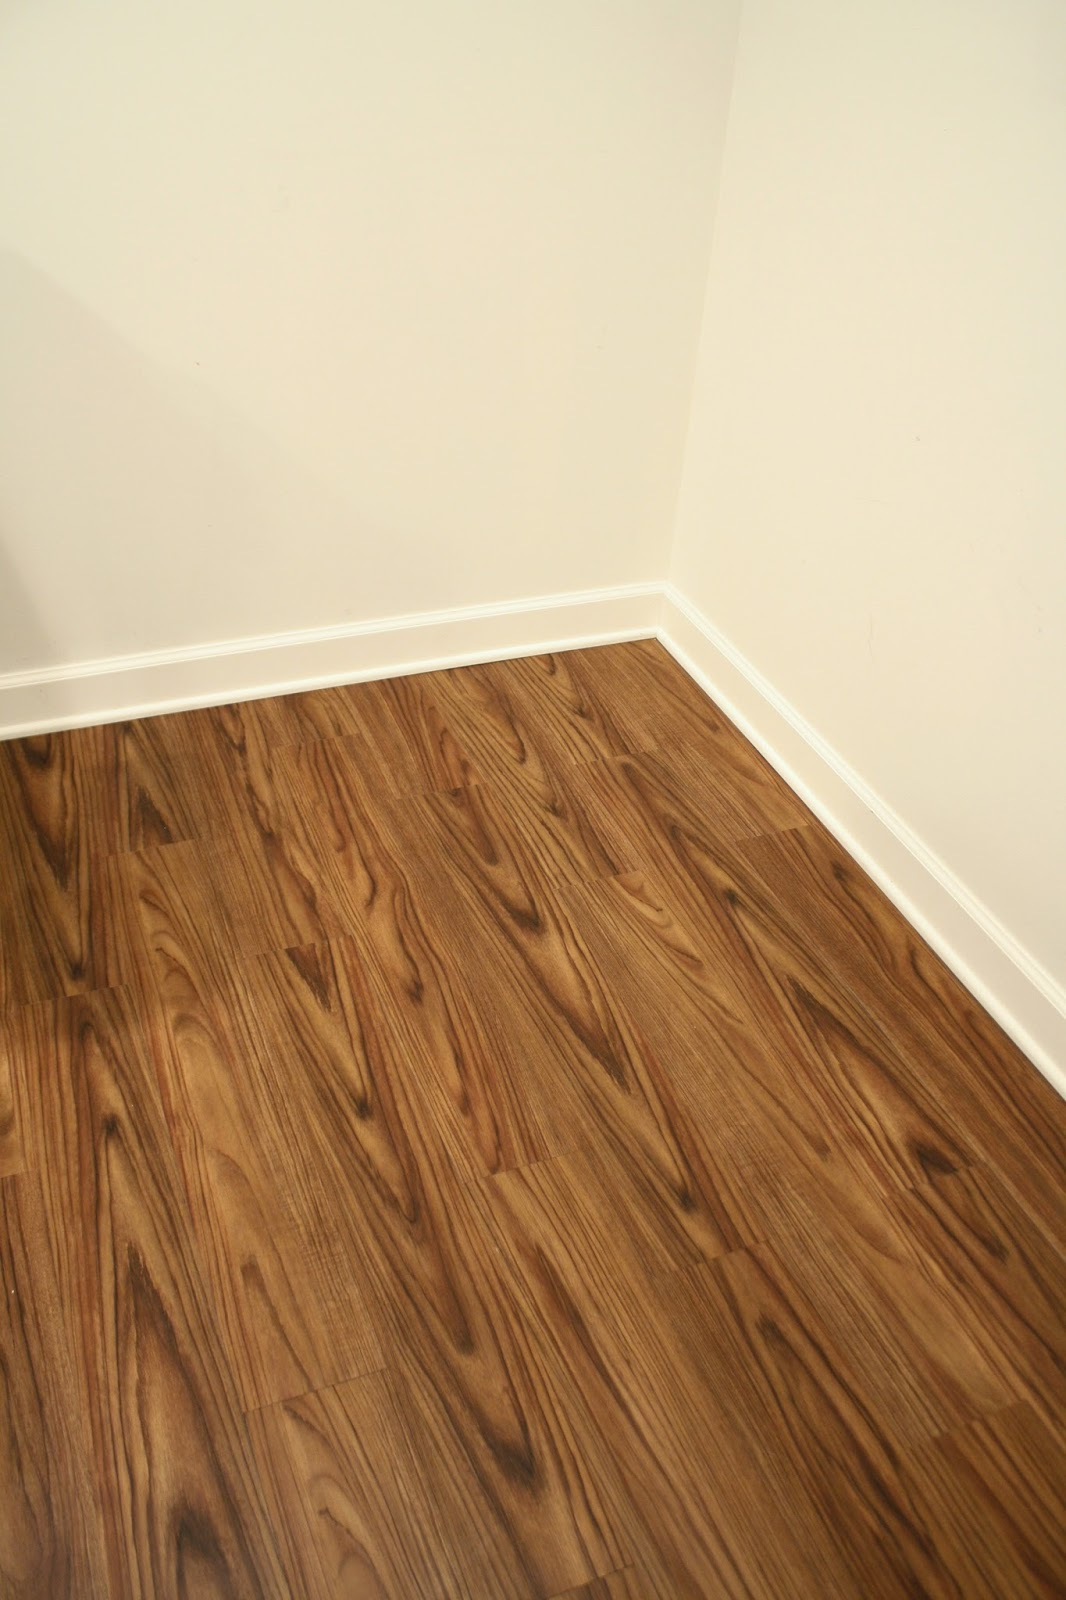 Wood Look Vinyl Flooring : Vinyl flooring that looks like wood for the basement